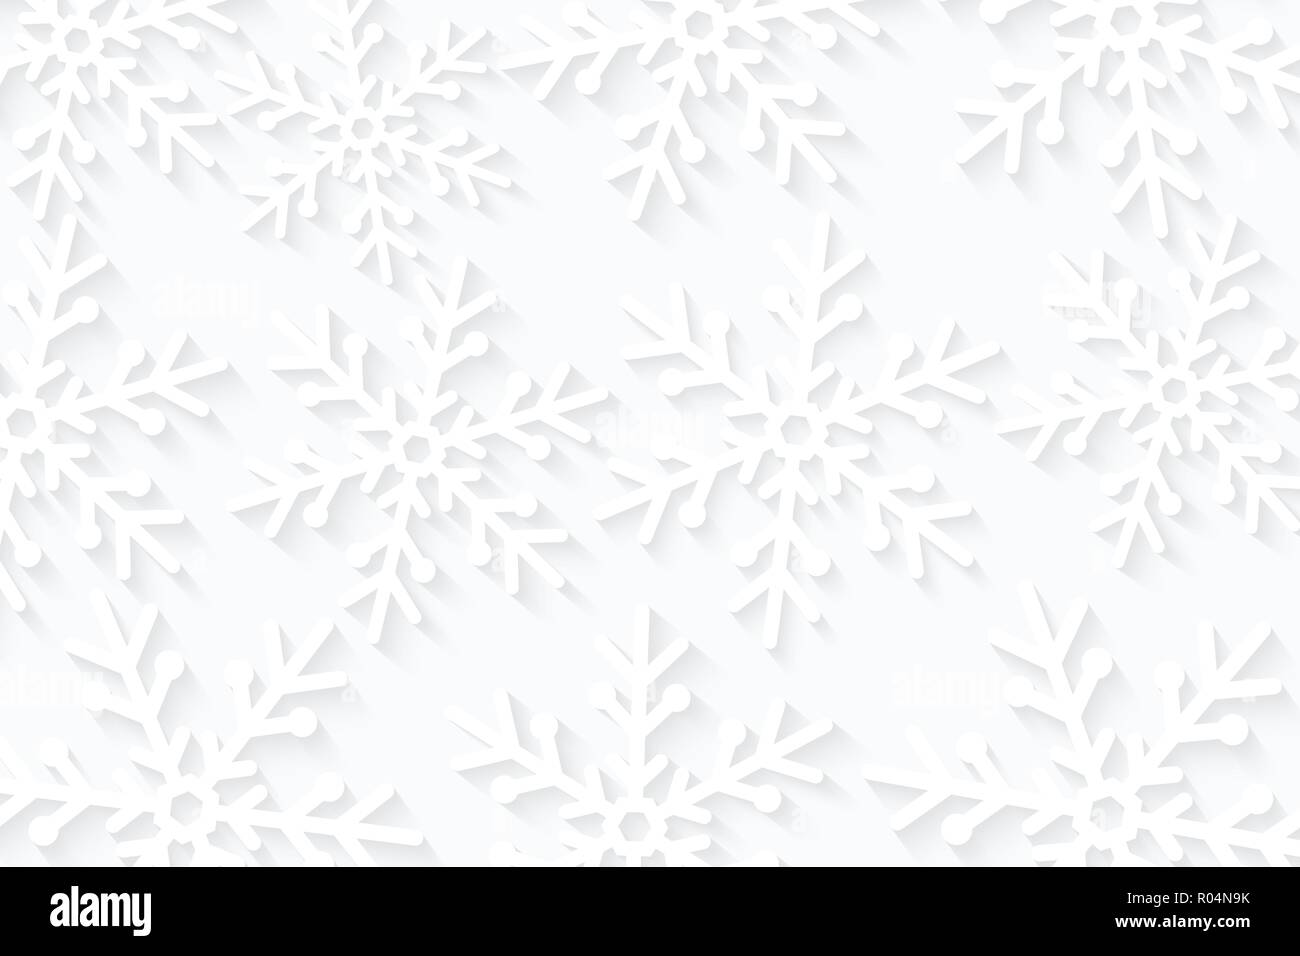 merry christmas and happy new year template